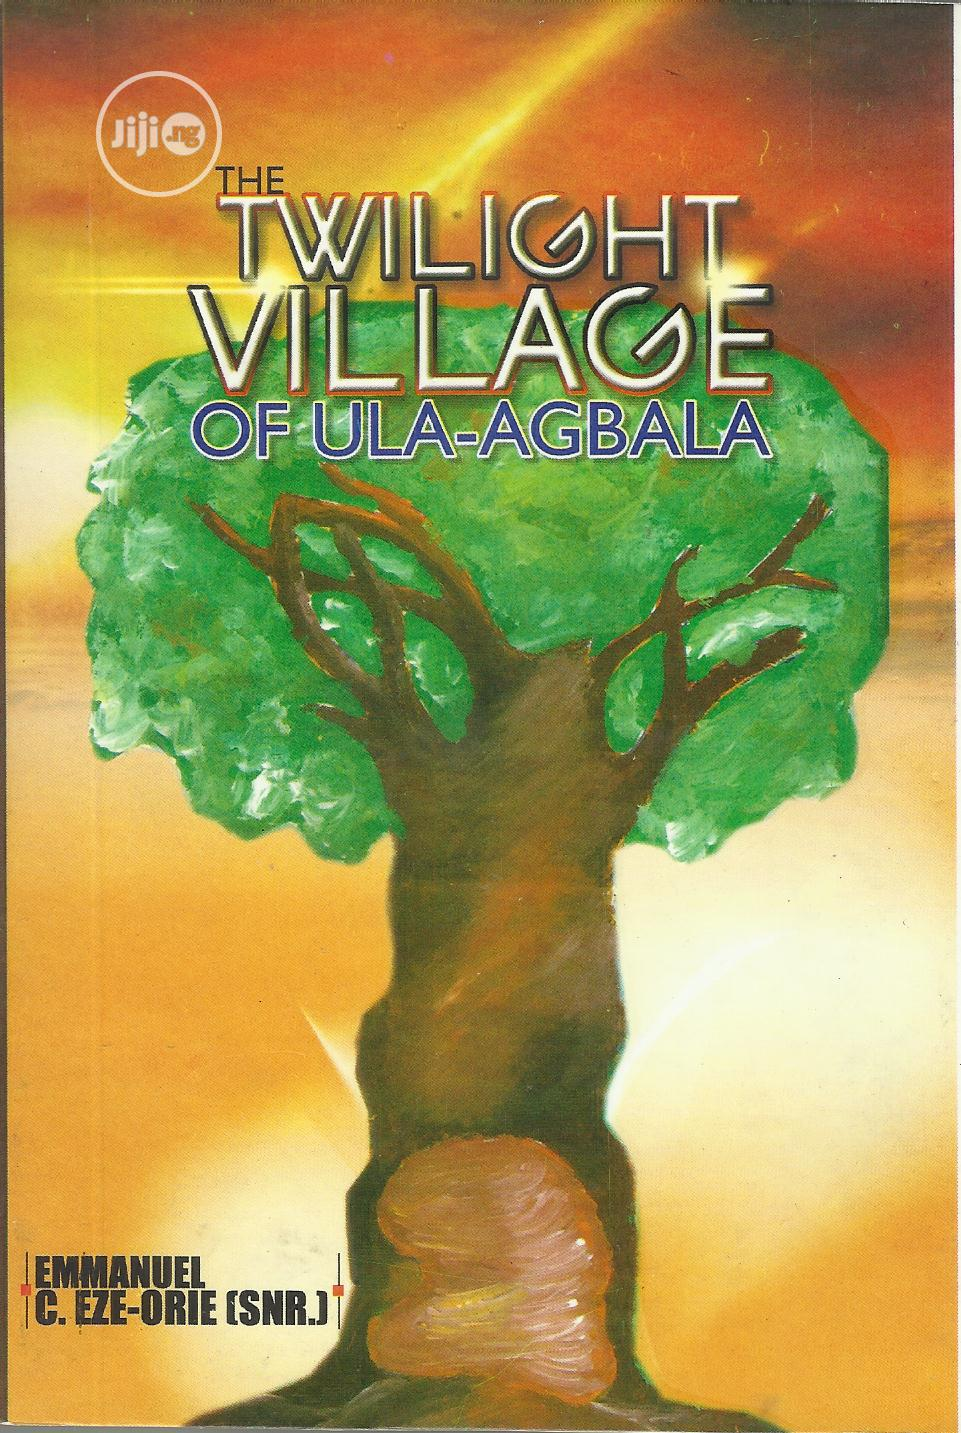 Archive: The Twilight Village Of Ula-agbala